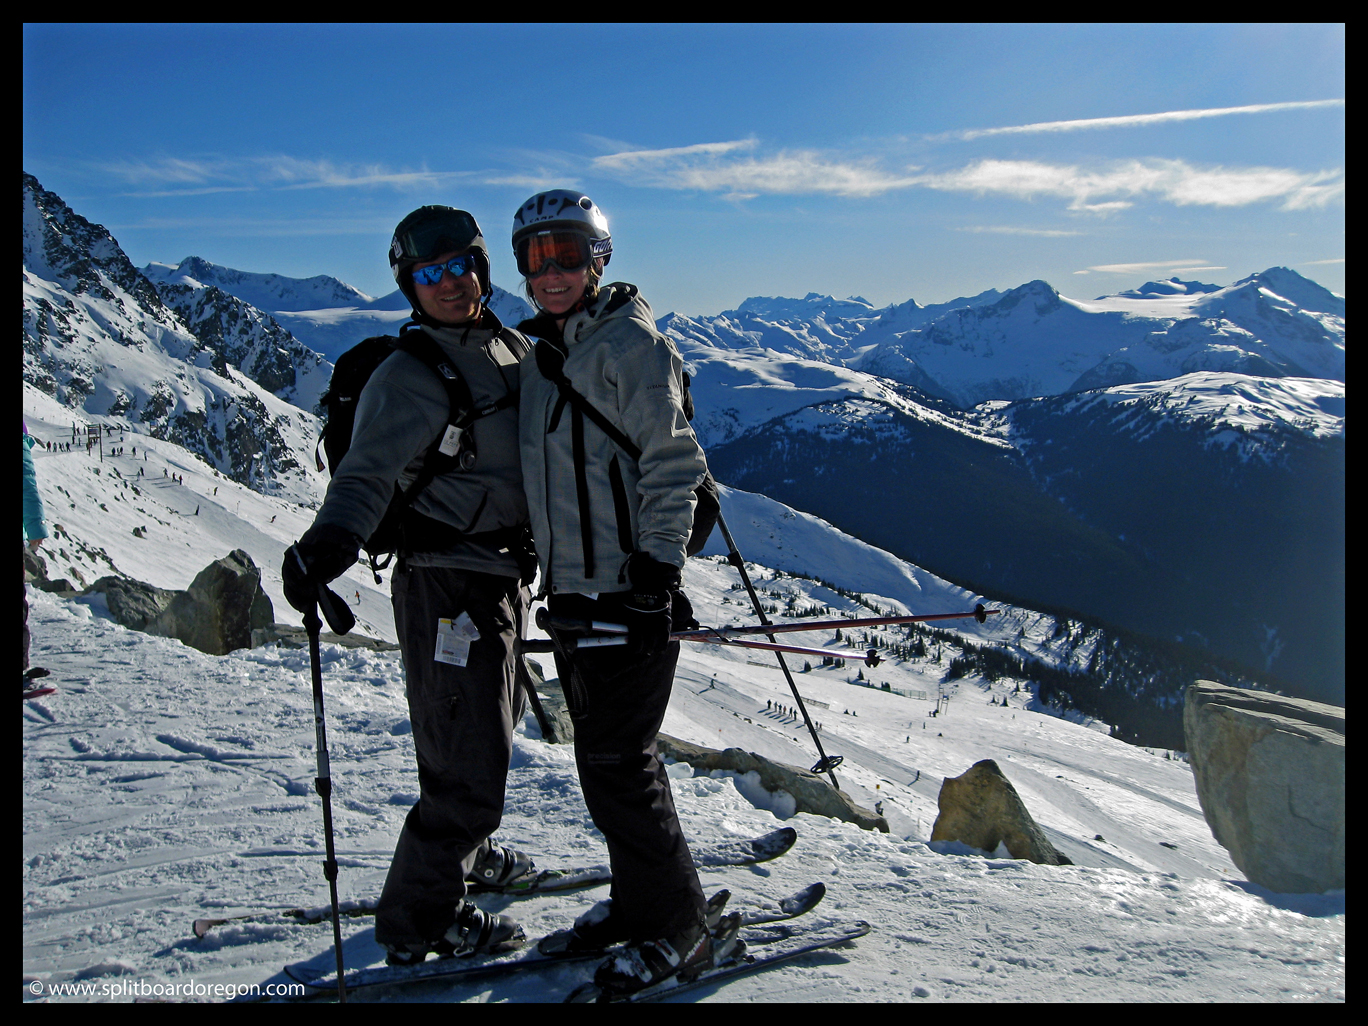 Todd and Kim at the top of 7th Heaven